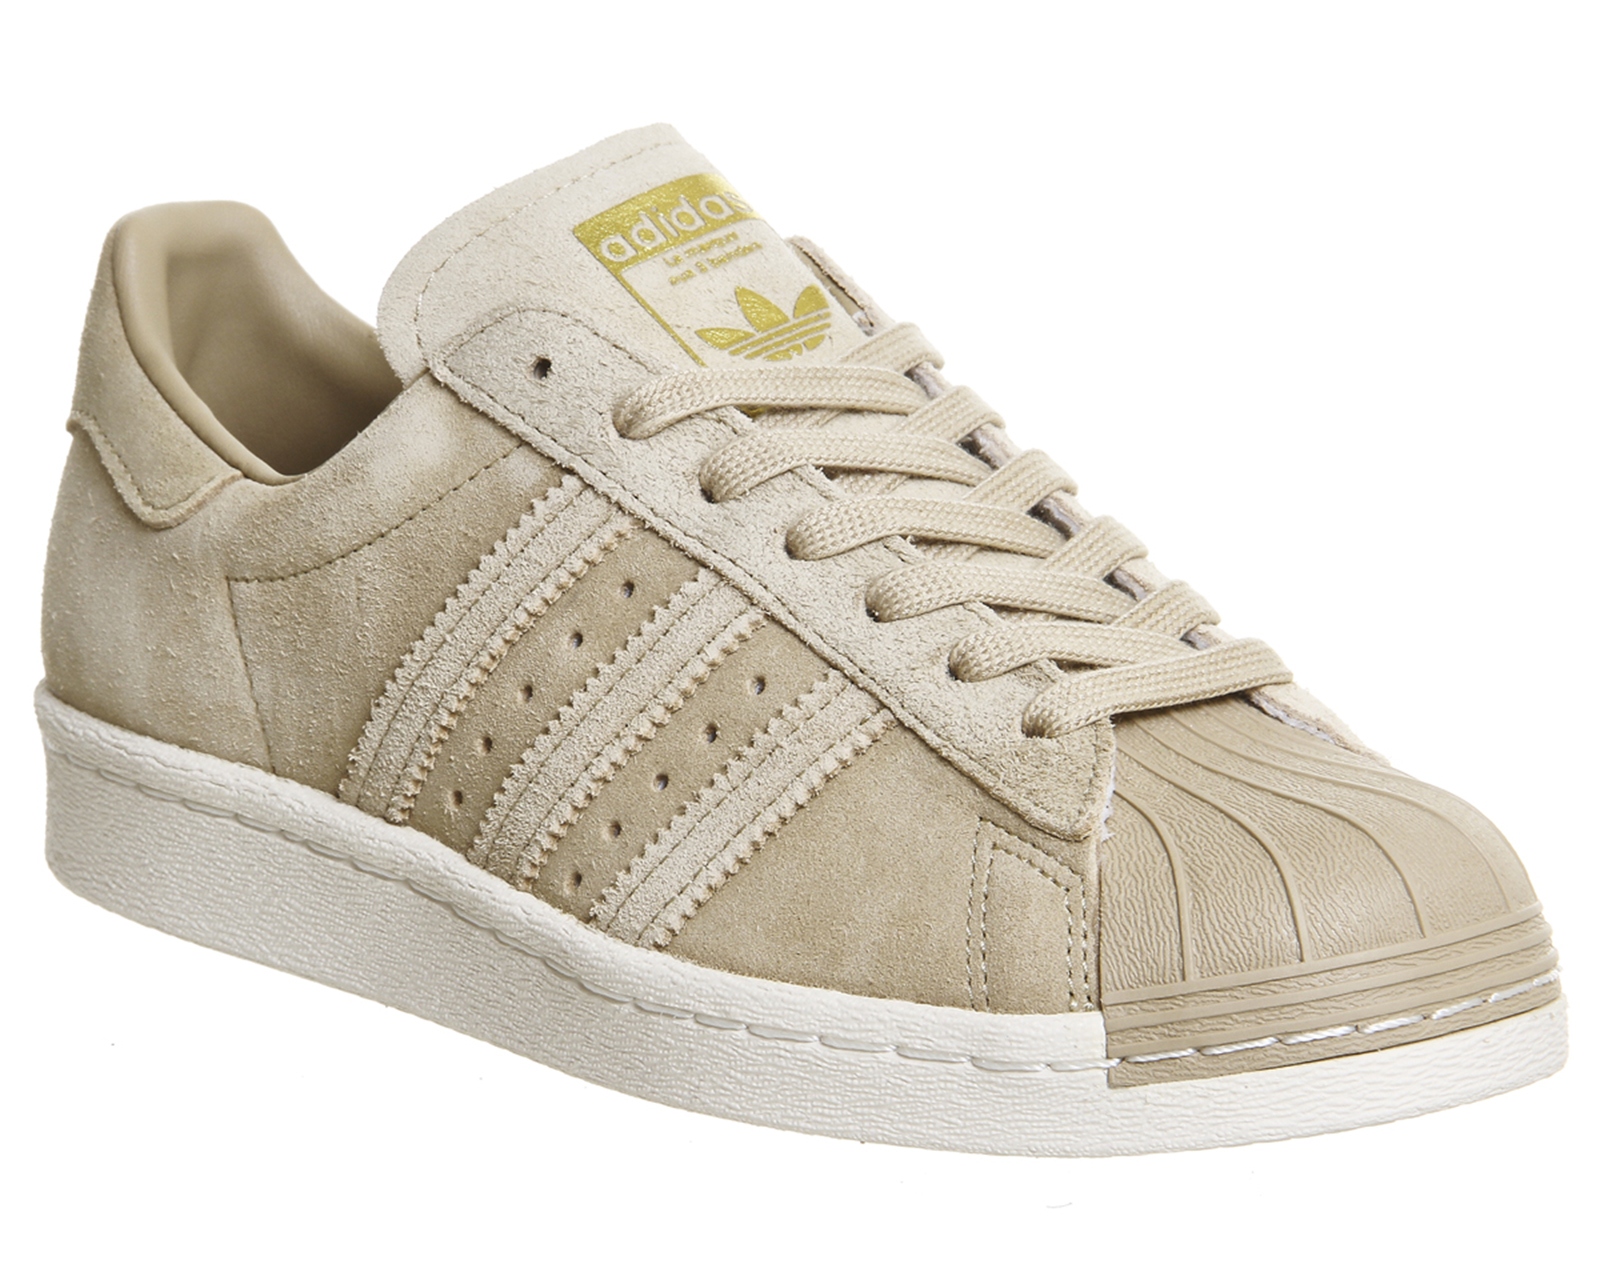 mens adidas superstar 80s linen khaki suede trainers shoes ebay. Black Bedroom Furniture Sets. Home Design Ideas